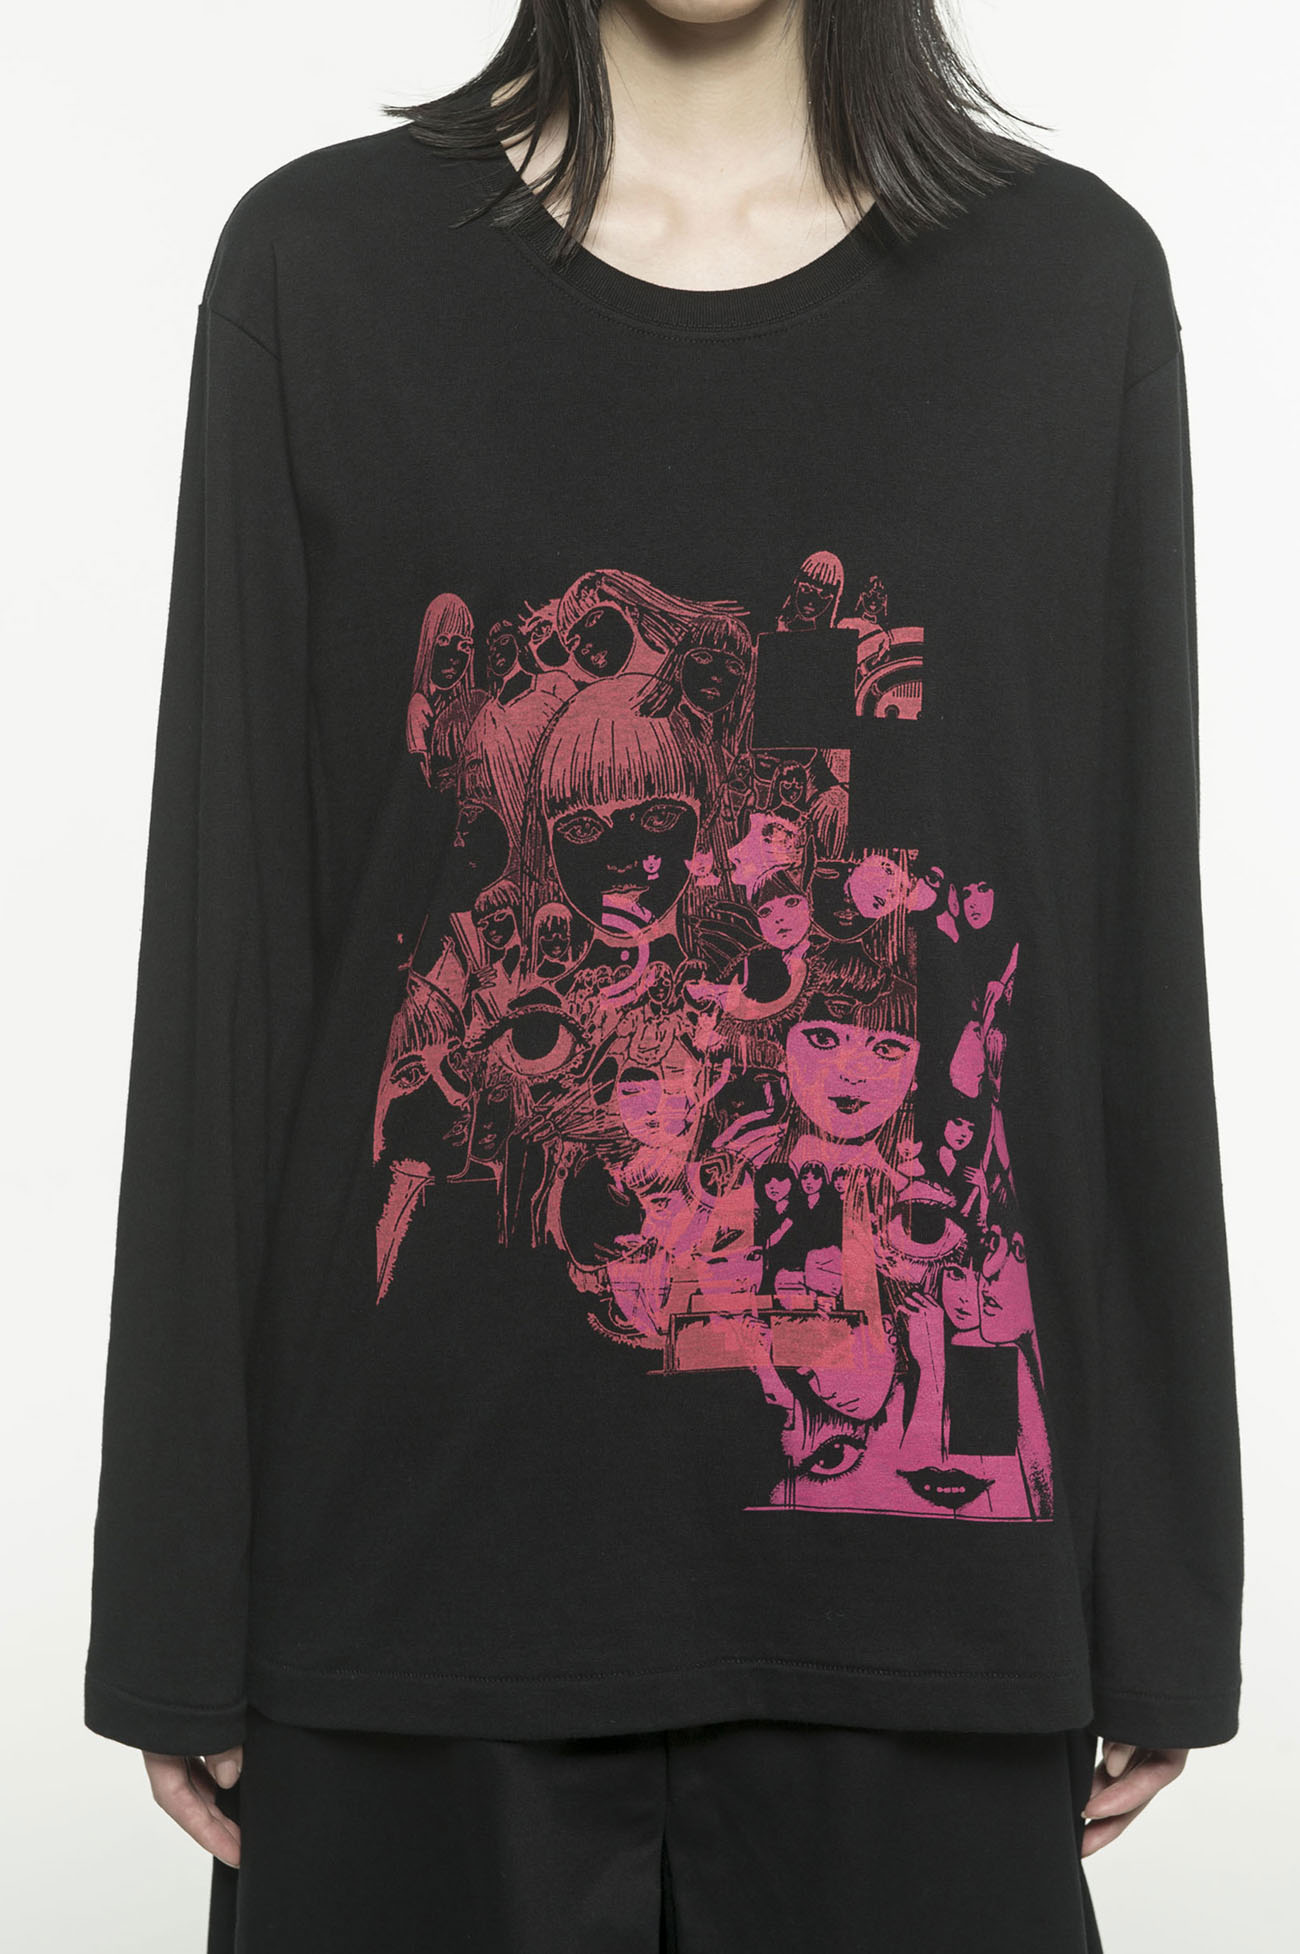 20 / CottonJersey Junji Ito `` BEST OF BEST '' Blind spotted Venus Long Sleeve T-Shirt